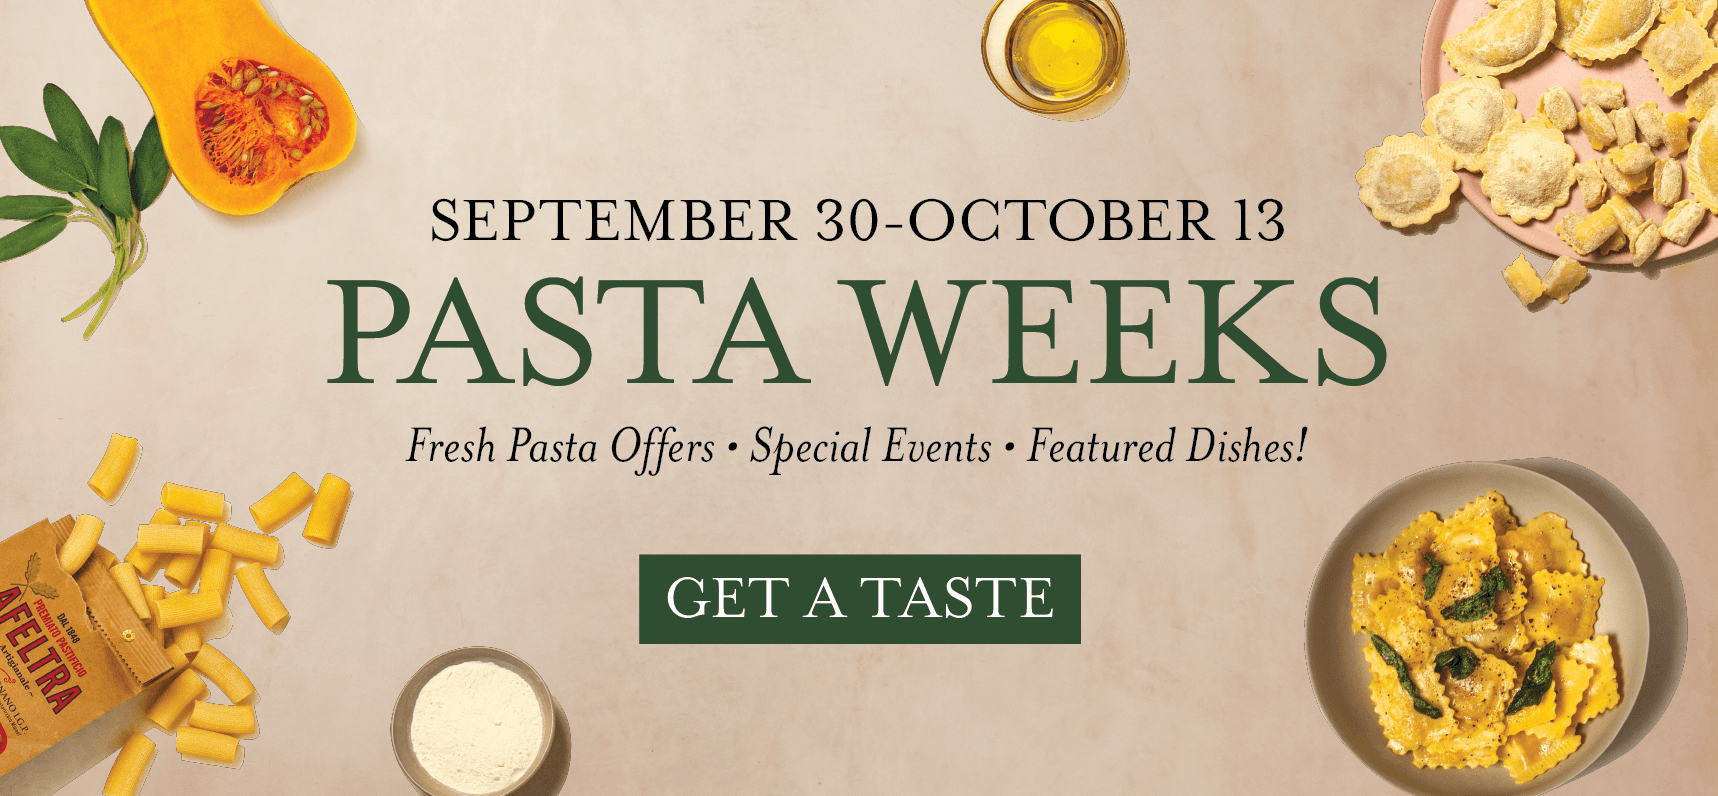 Pasta Weeks at Eataly Chicago